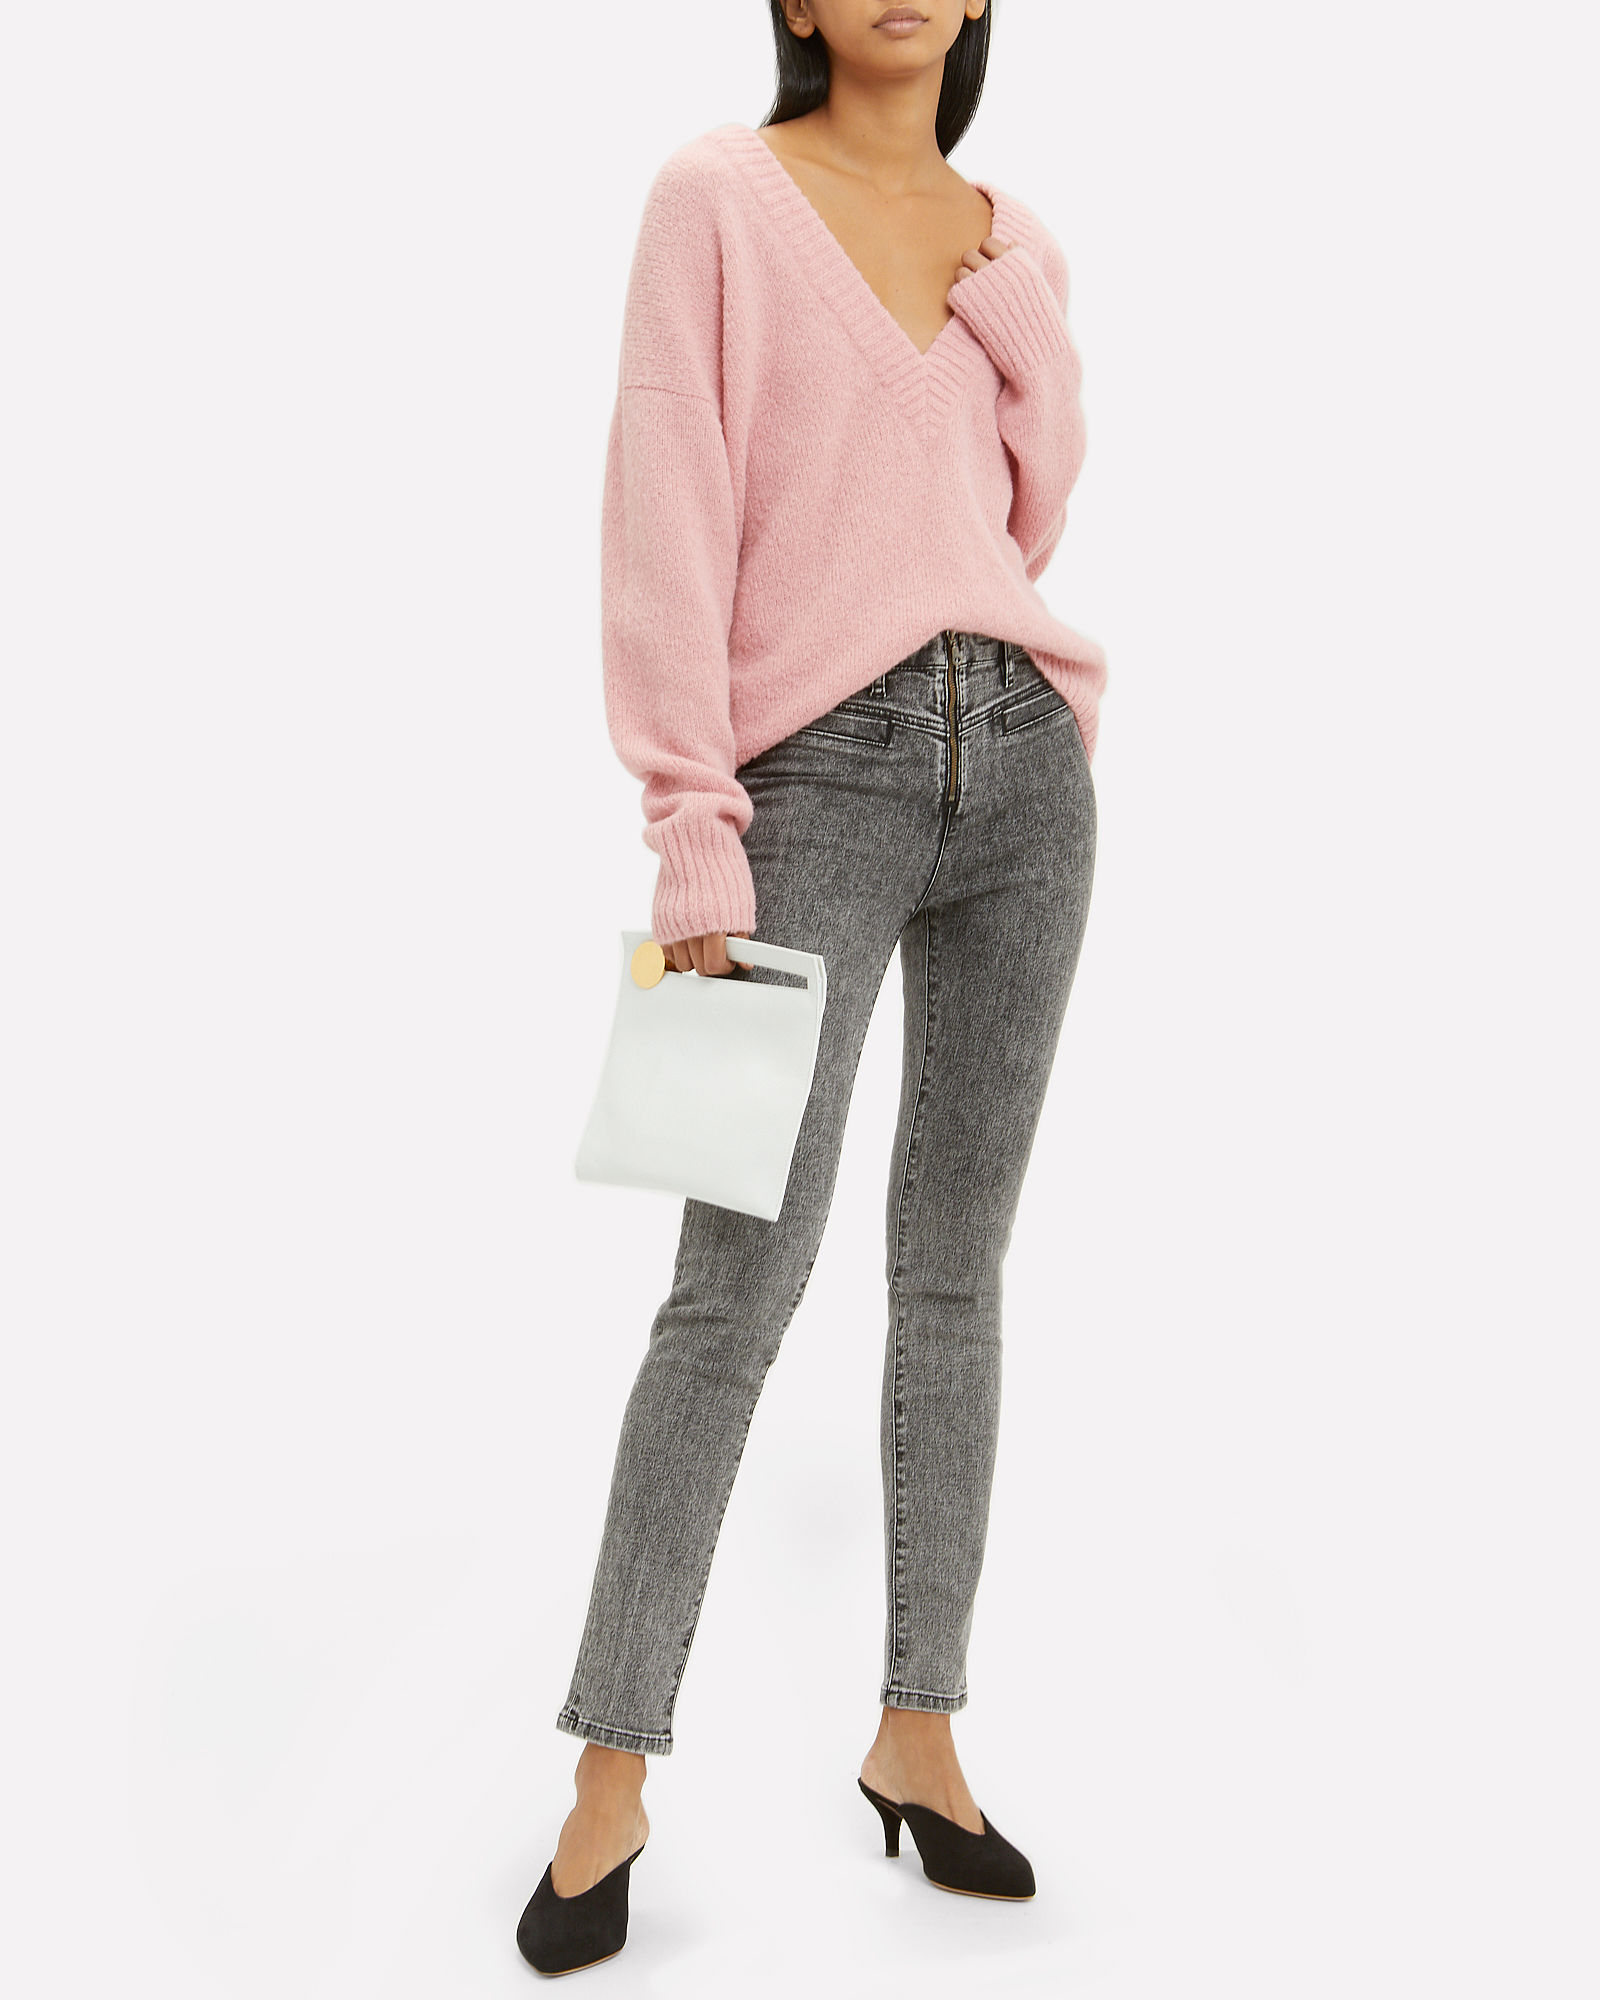 2. Daring denim - Find your perfect pair just right for casual work days—or girls night out.